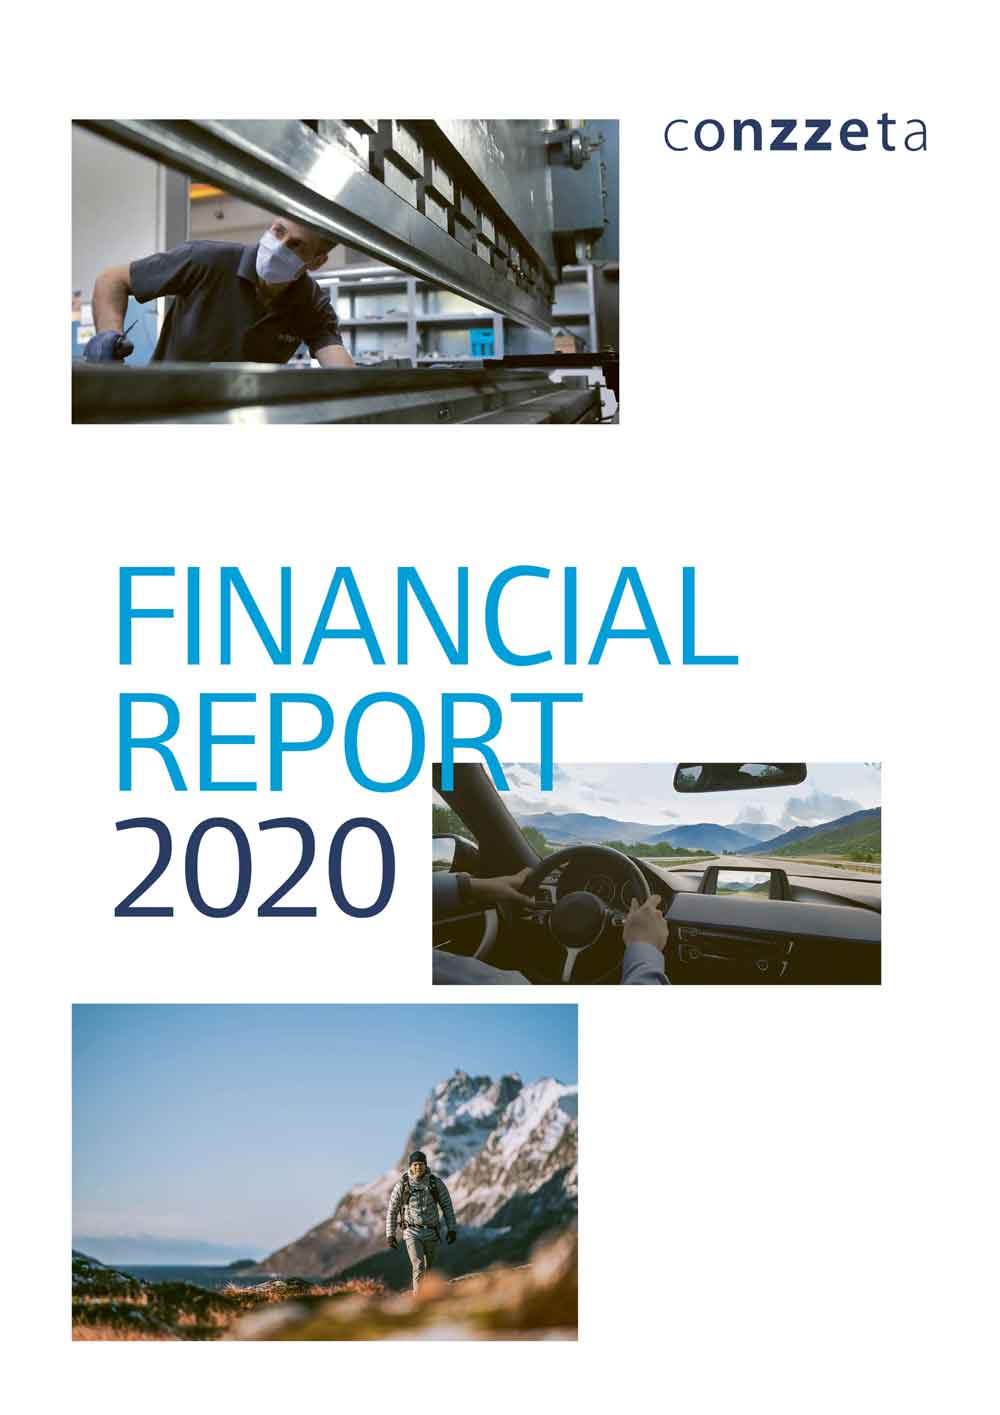 Financial Report 2020